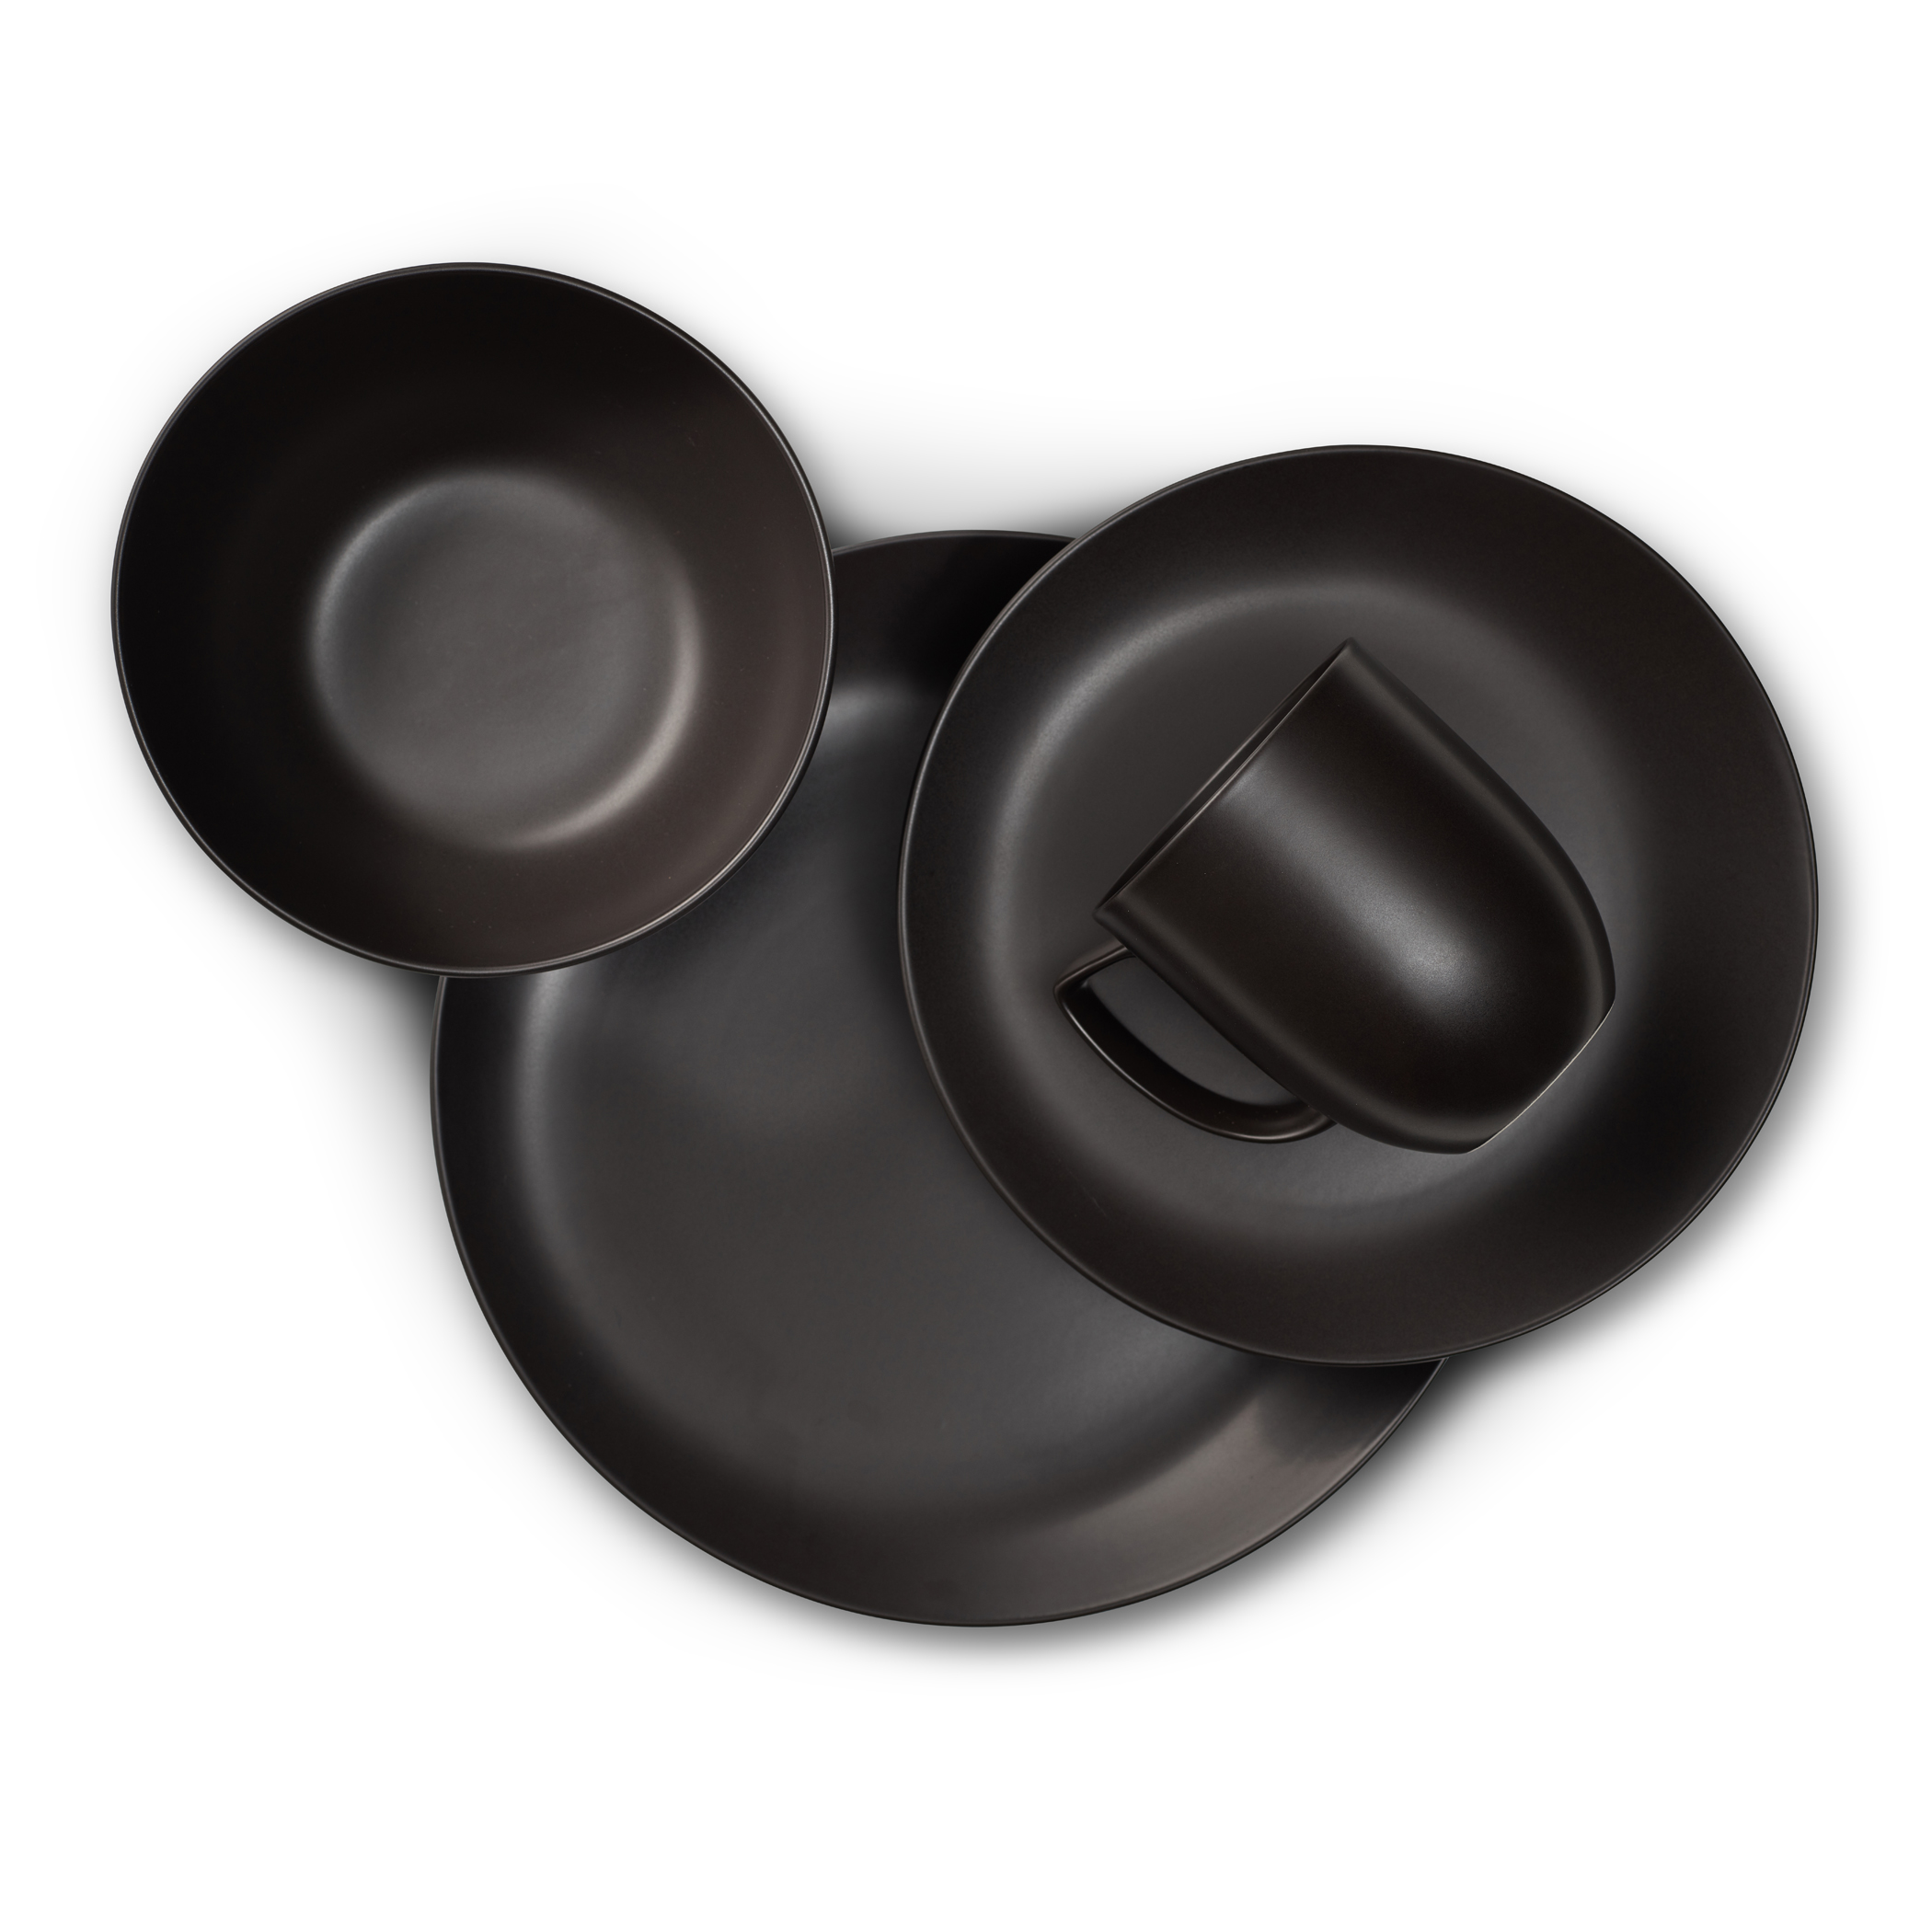 Orbit 4-Piece Place Setting - Celestial Black image number 1